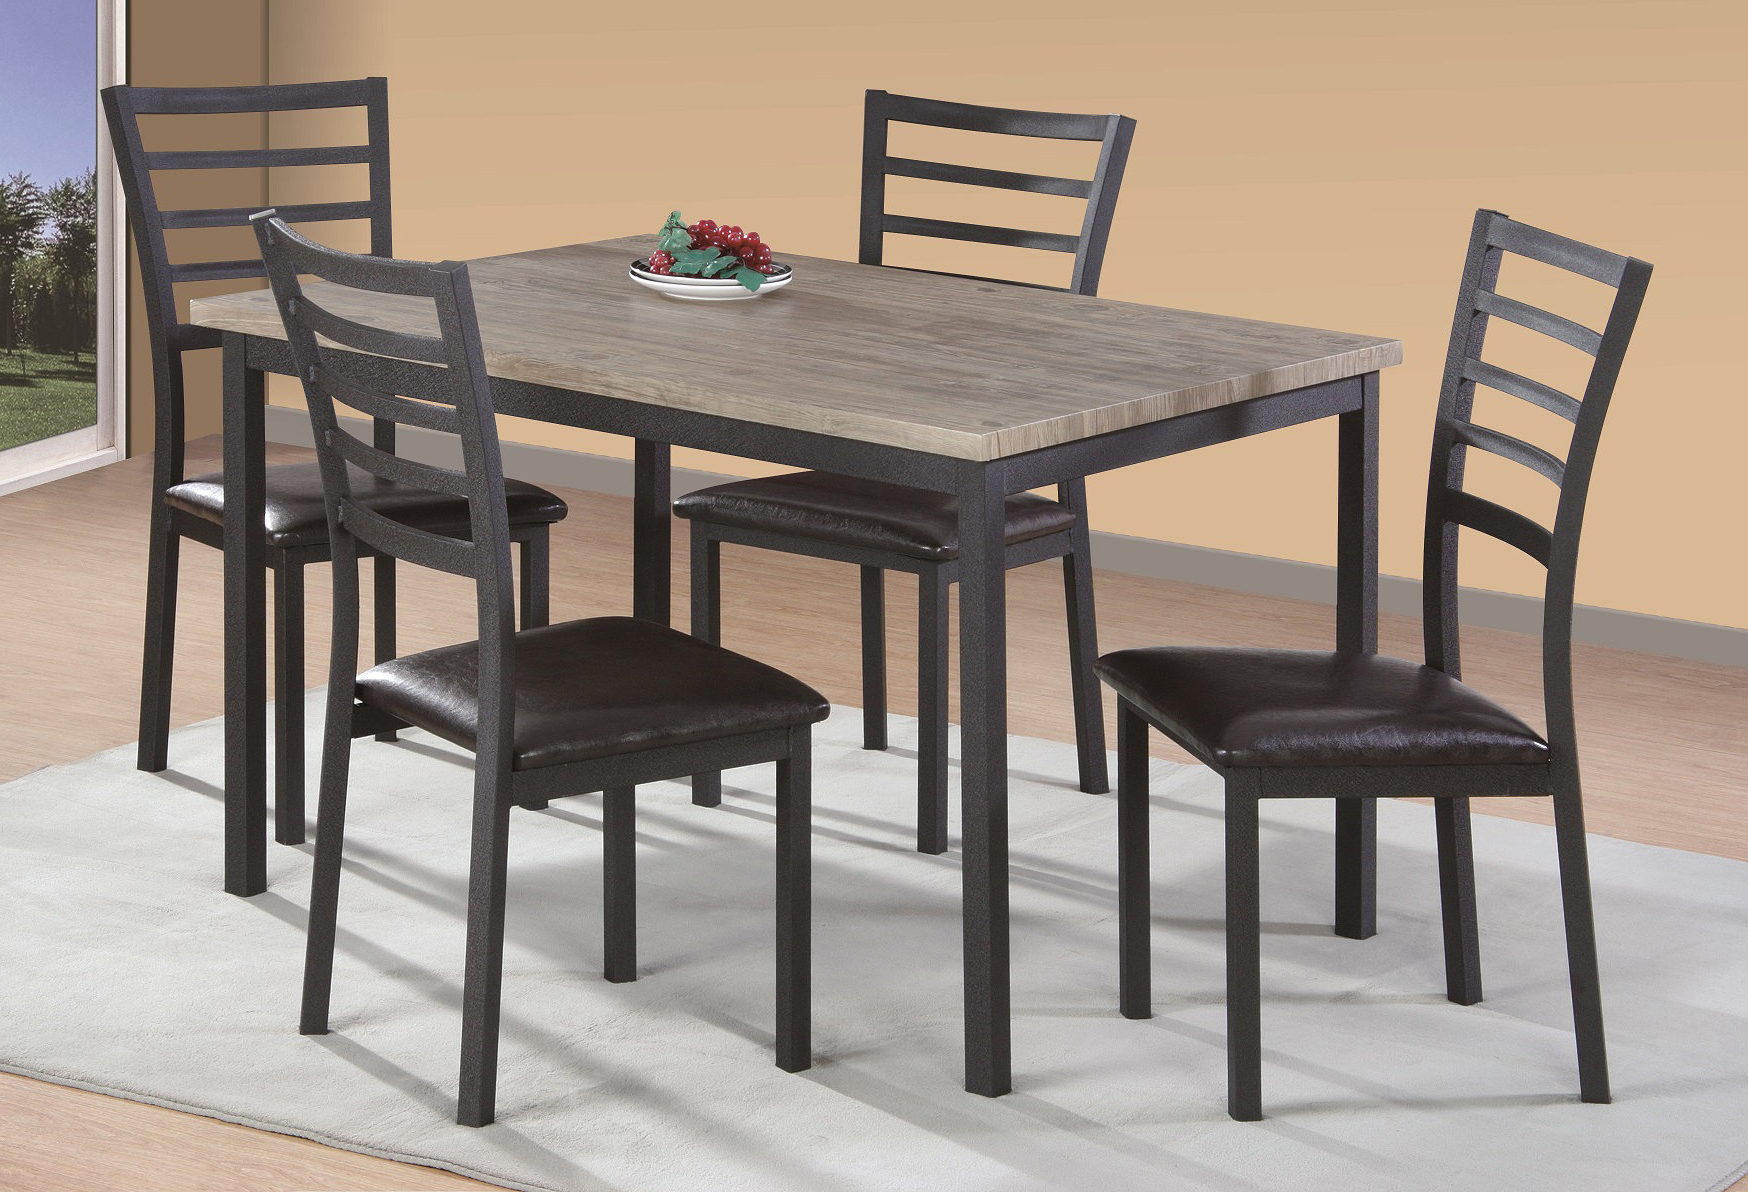 Wayfair Intended For Famous Pattonsburg 5 Piece Dining Sets (View 22 of 25)